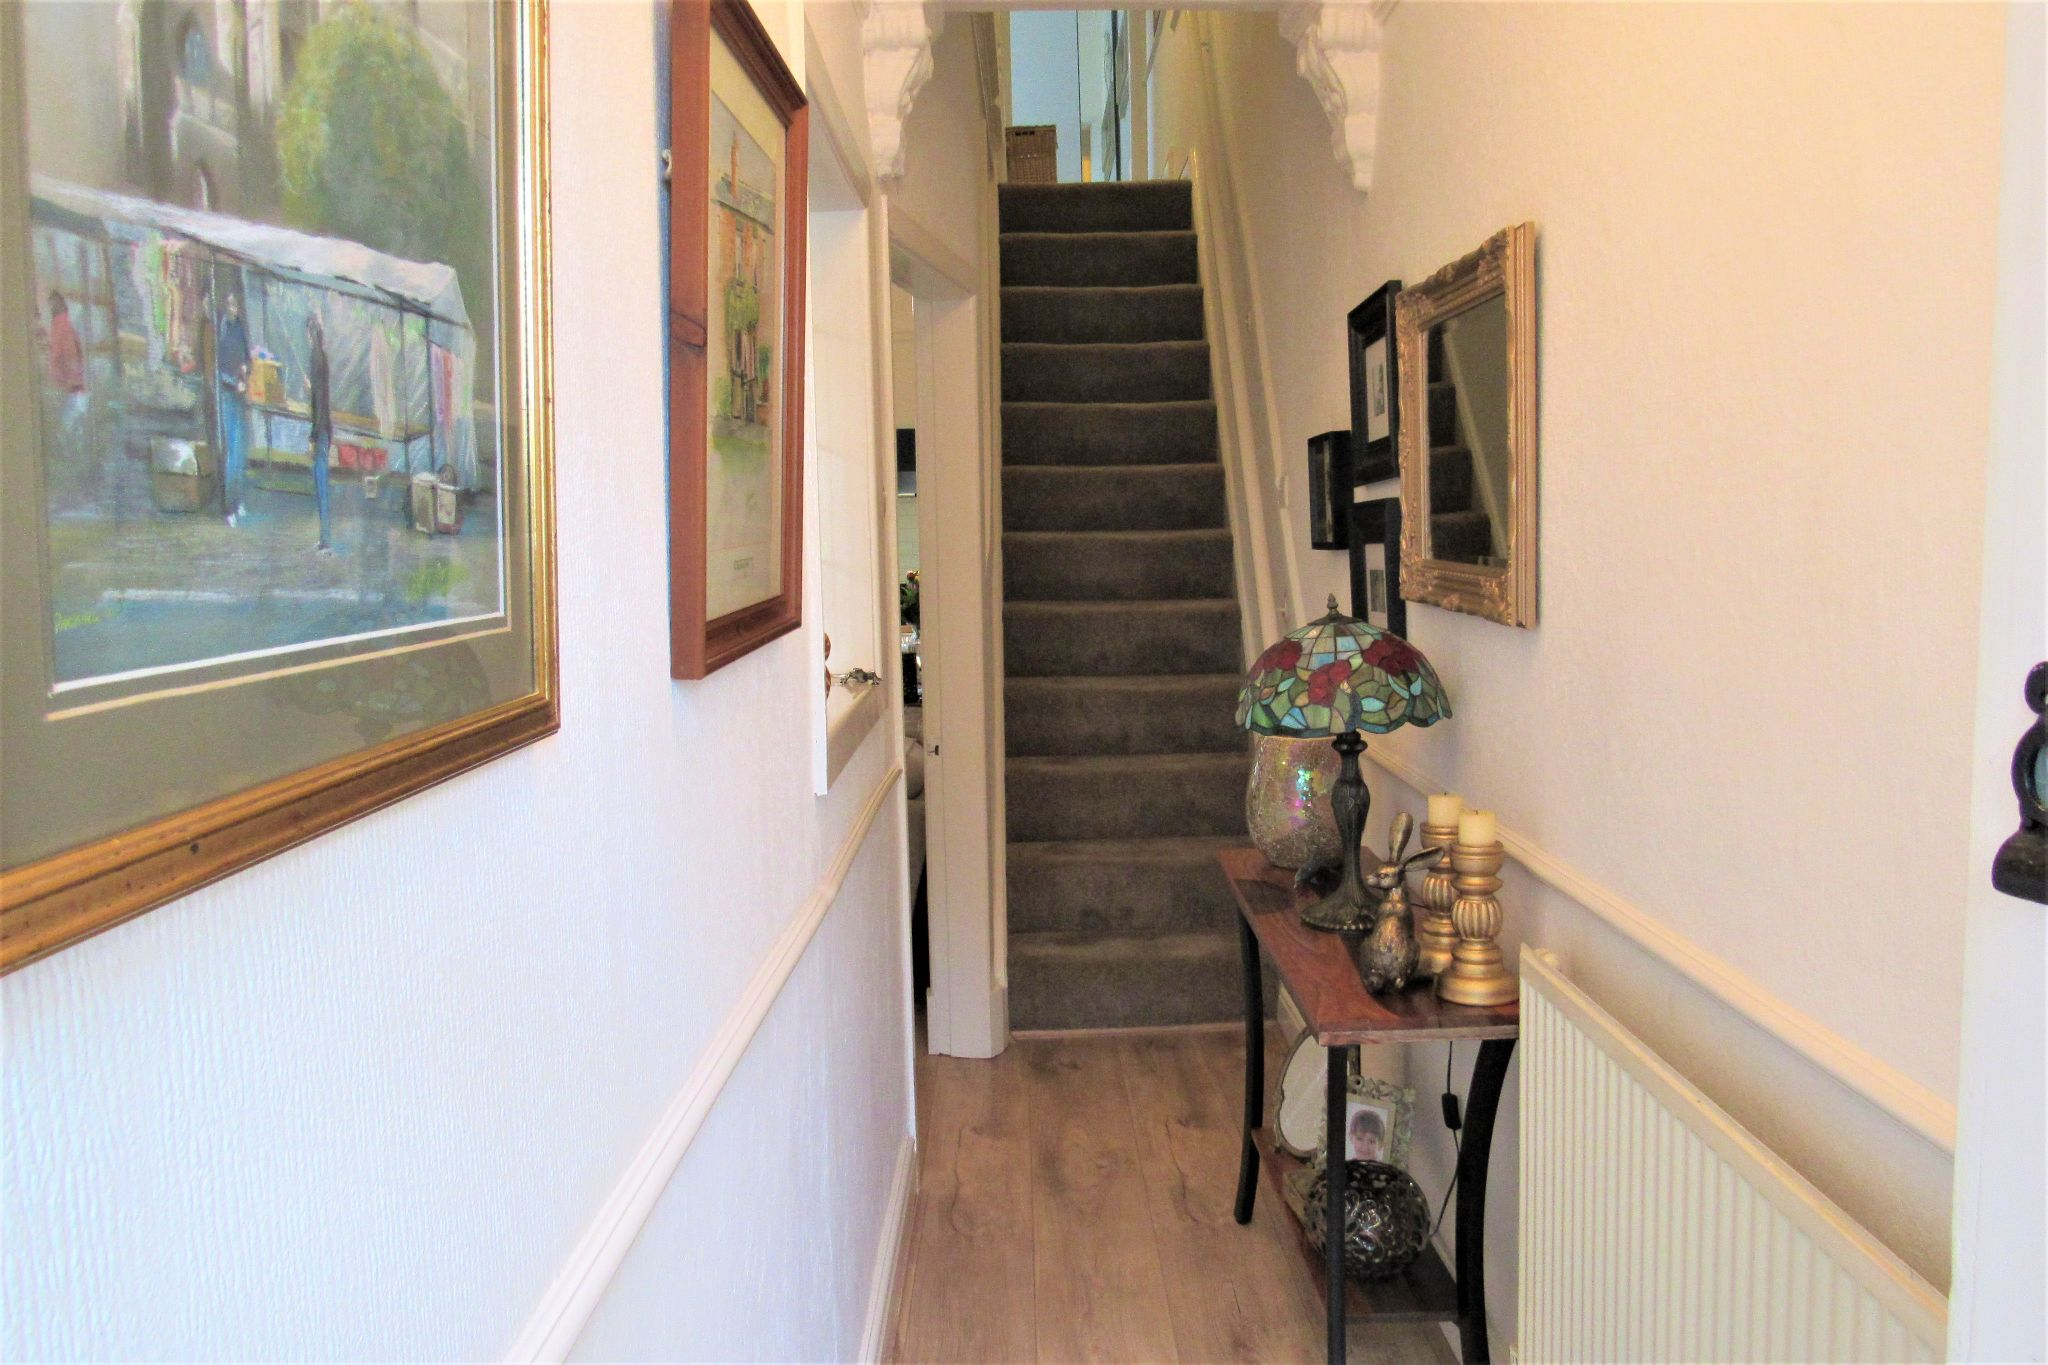 3 bedroom mid terraced house SSTC in Stockport - Photograph 5.